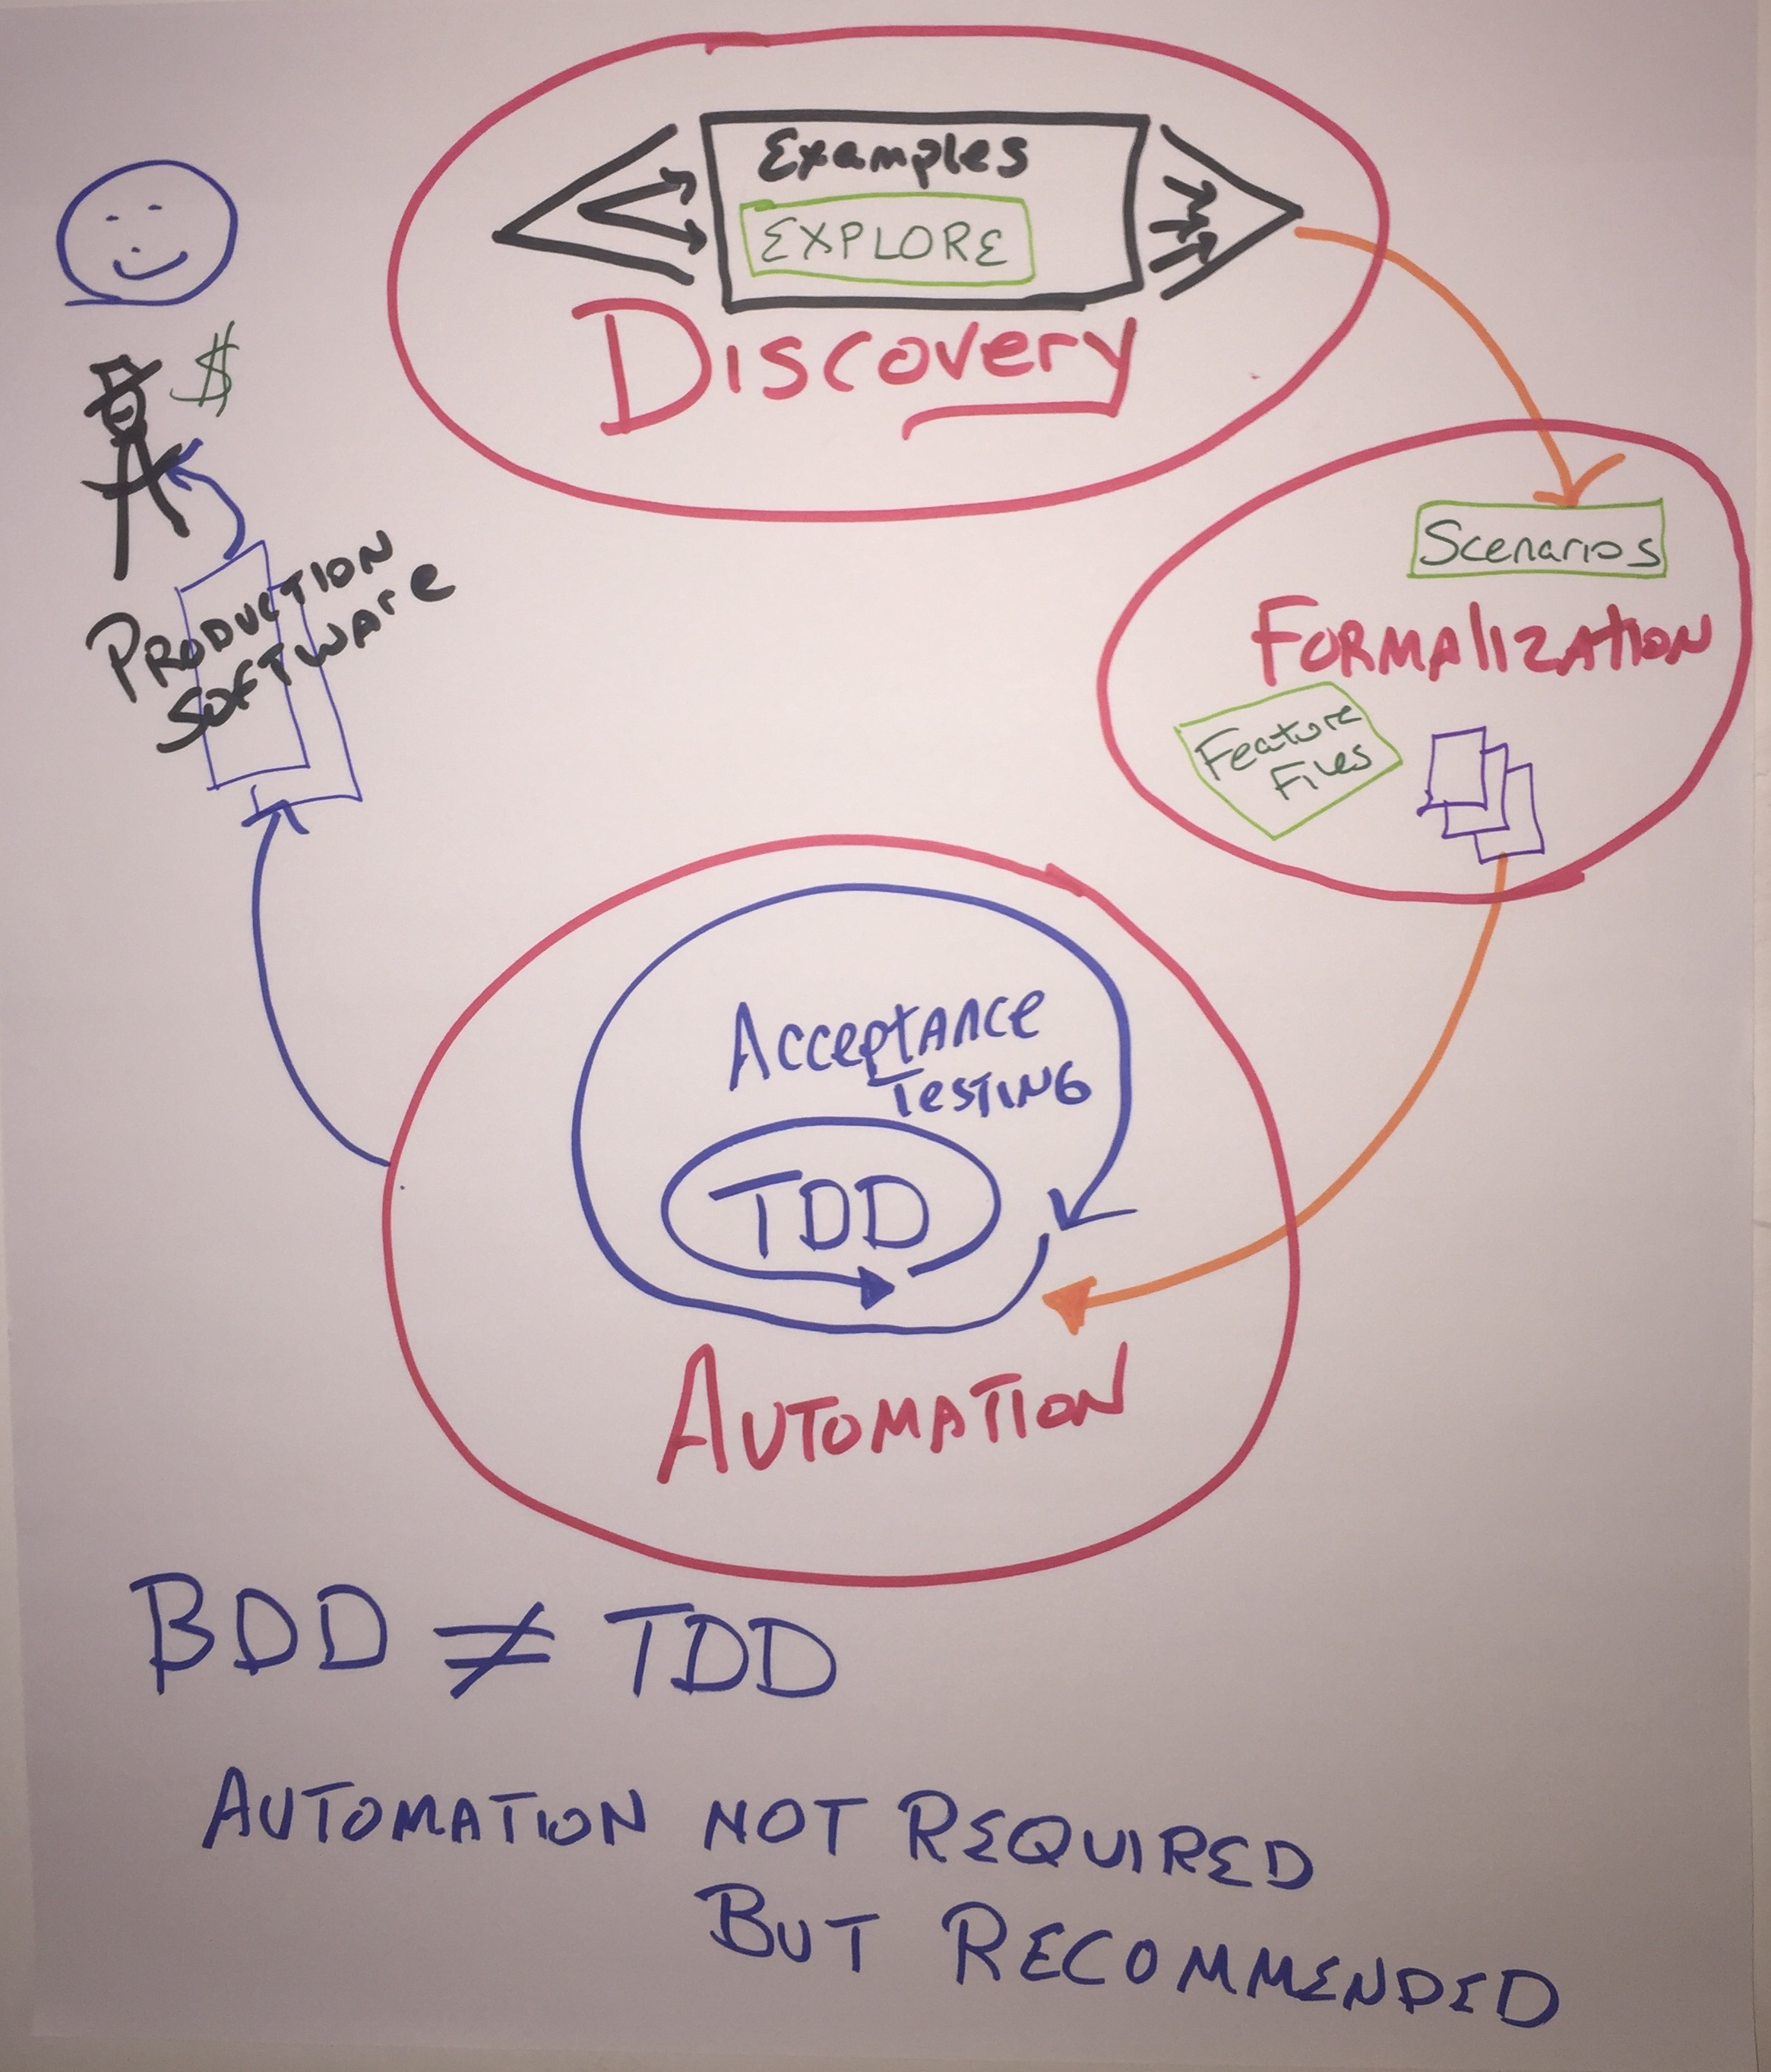 BDD is primarily about Discovery of Business Requirements